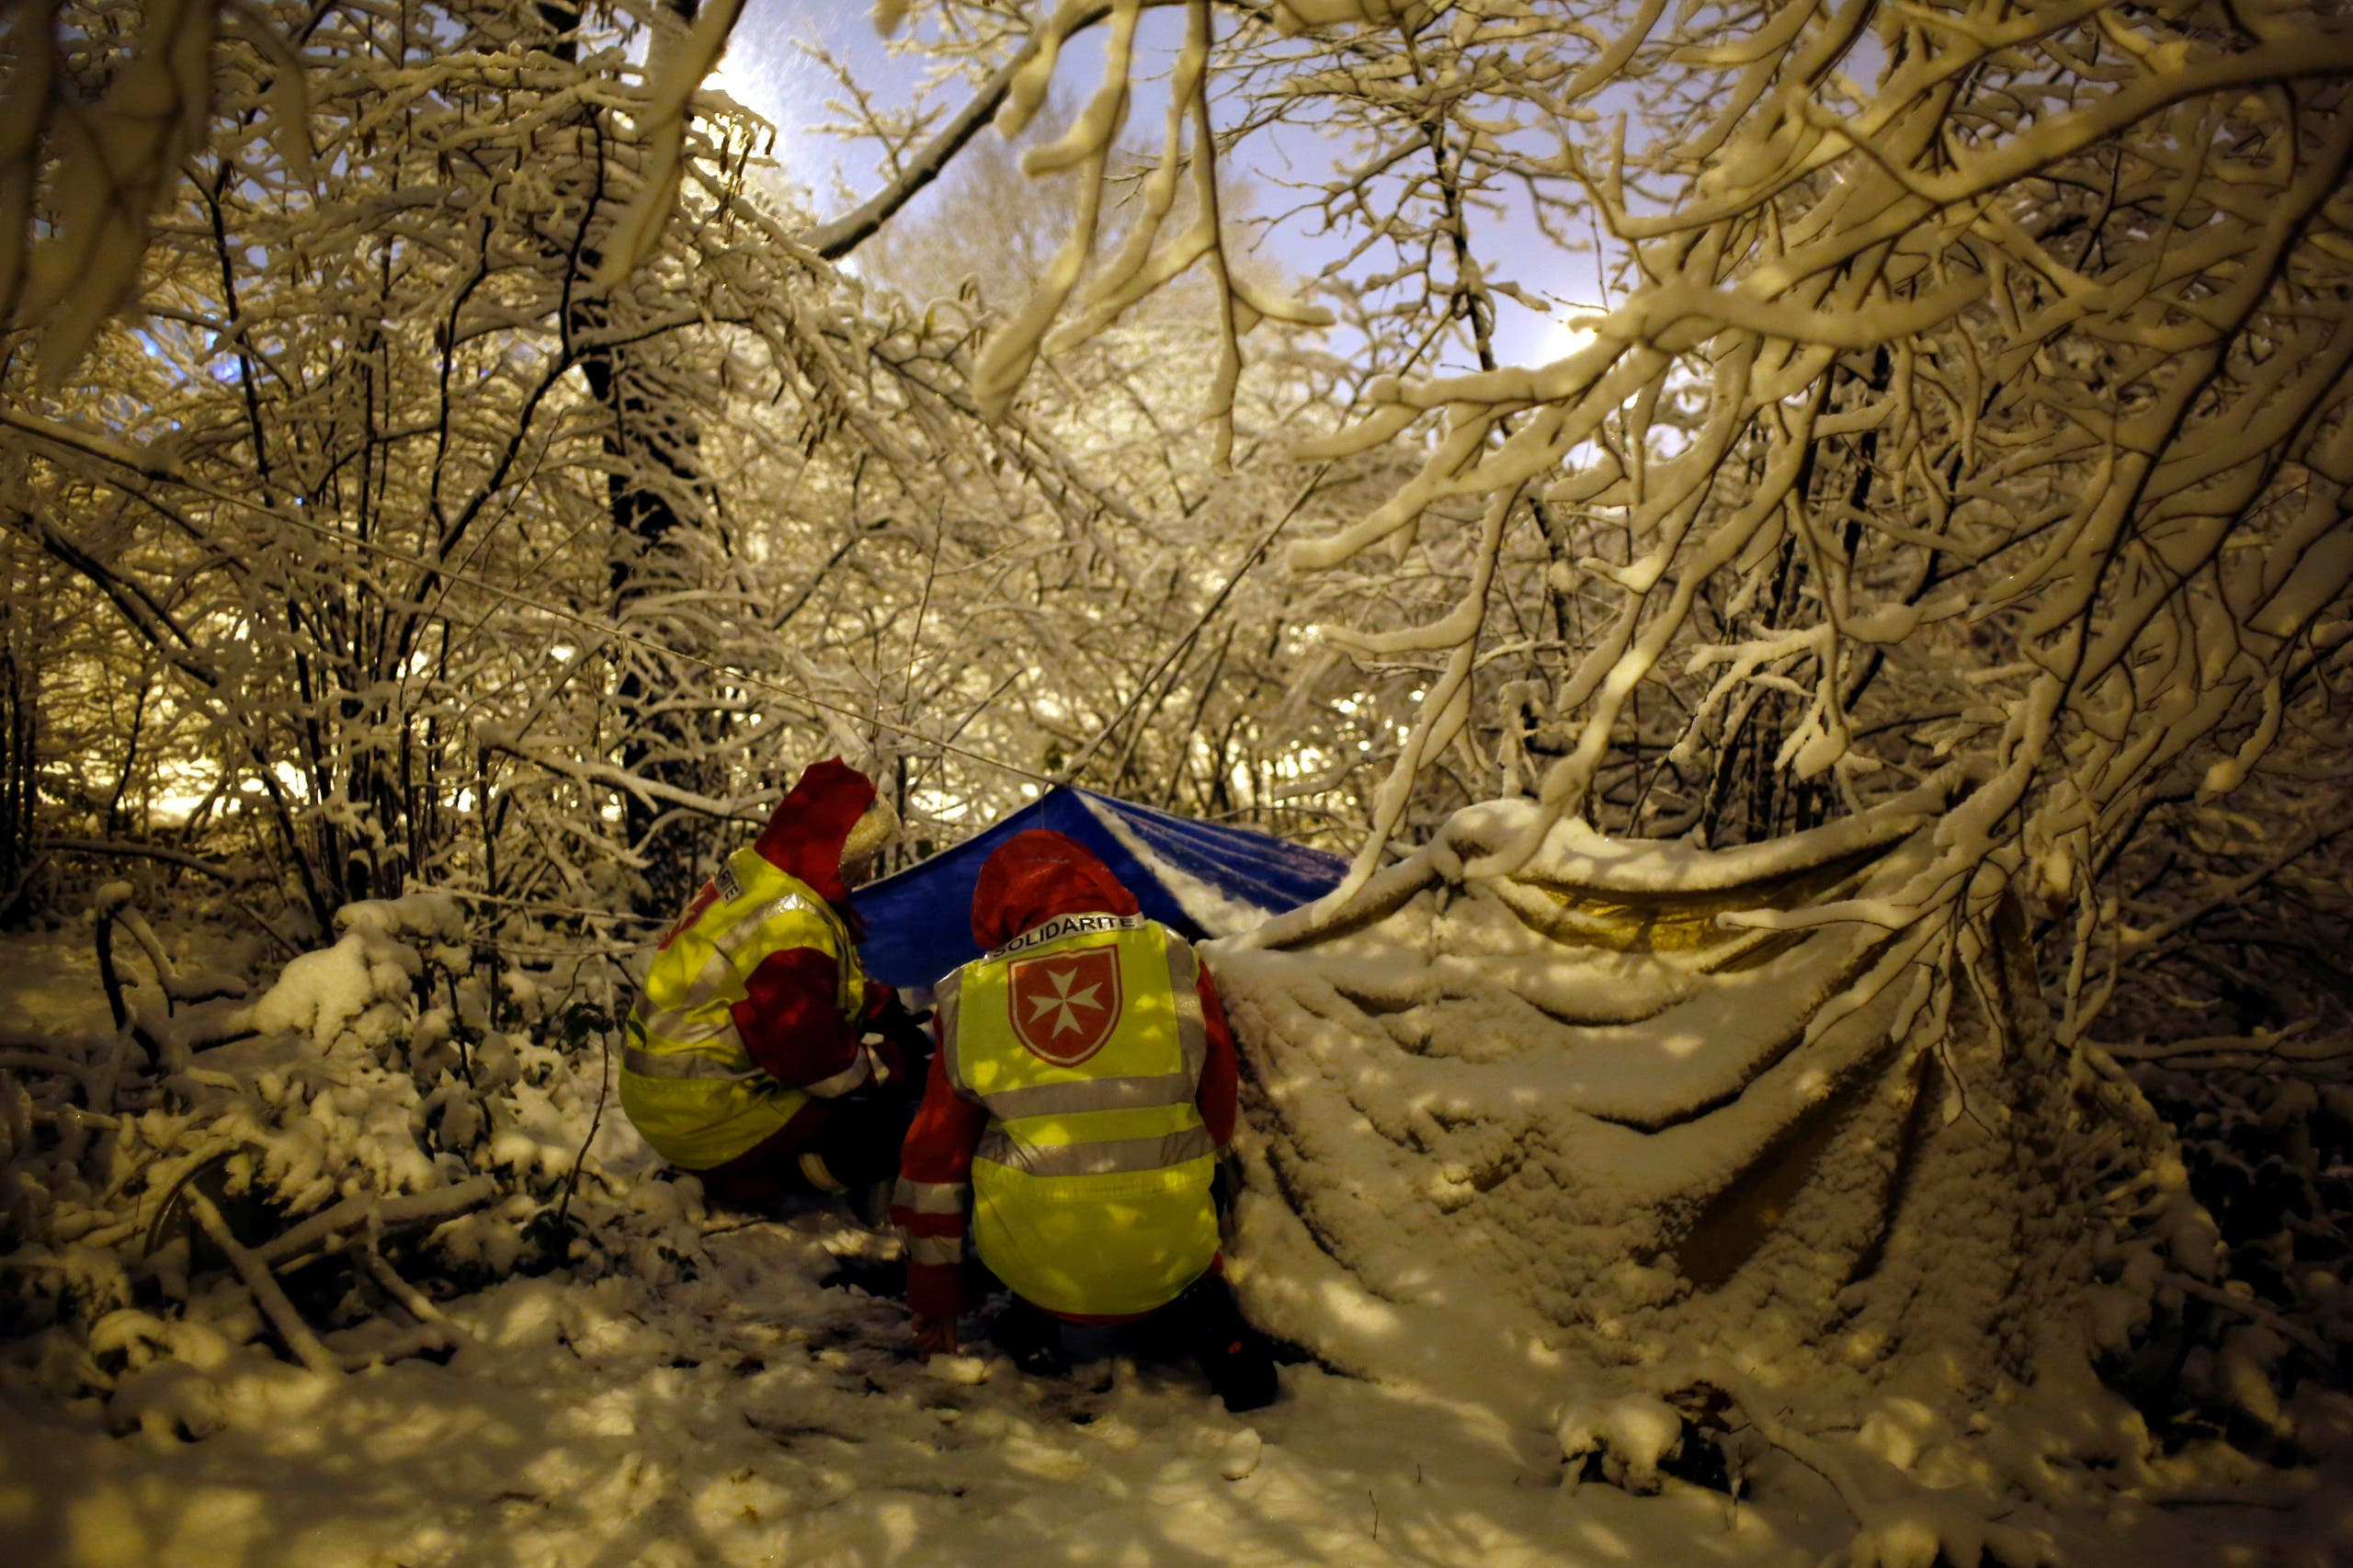 Volunteers from Malta talk with an homeless man in his tent in Boulogne Billancourt, west of Paris, Tuesday, Feb. 6, 2018. France's national weather agency Meteo France said Monday about half the country is on alert for dangerous levels of snow and ice. (AP)